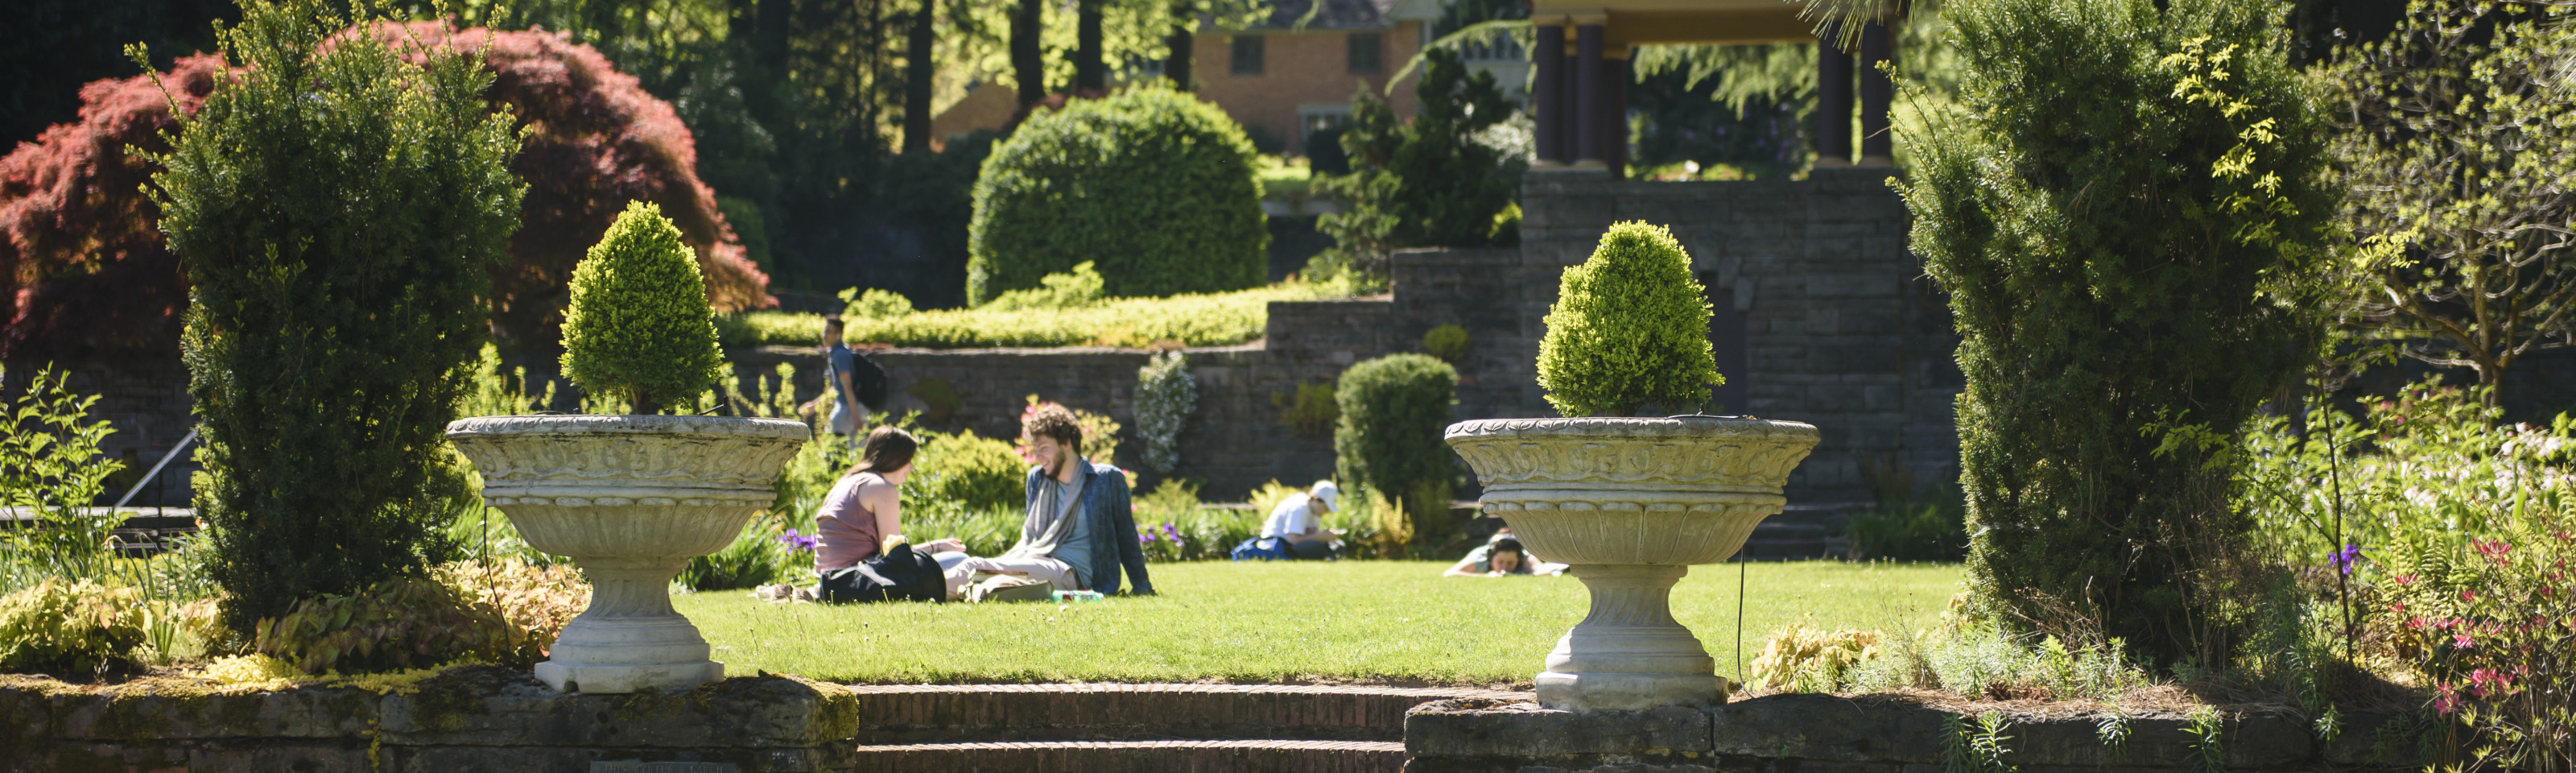 Students sitting on the grass in the Estate Gardens.